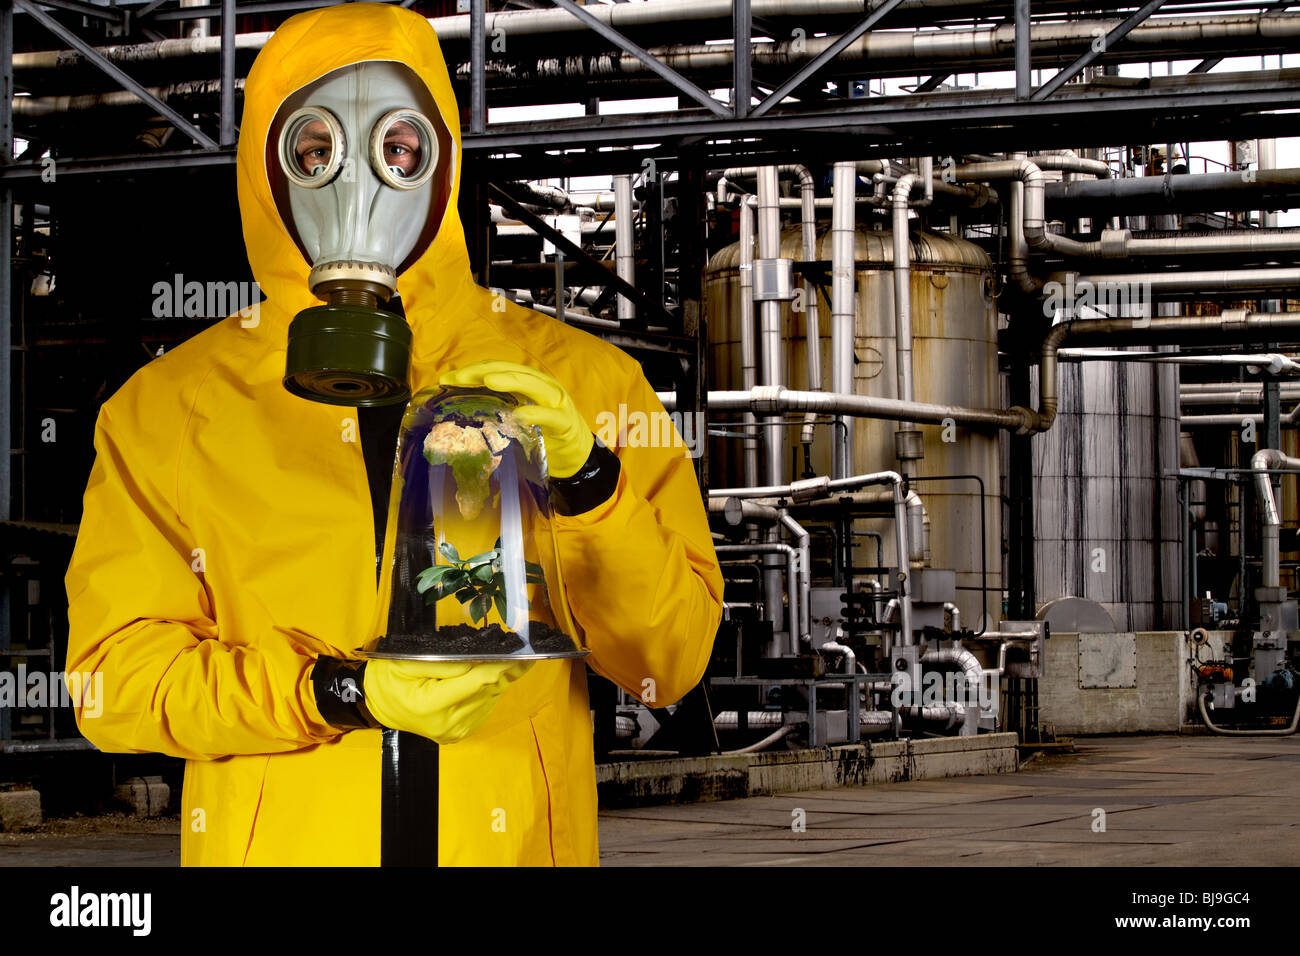 Man in chemical suit with mask holding plant in a portable greenhouse at chemical plant. - Stock Image